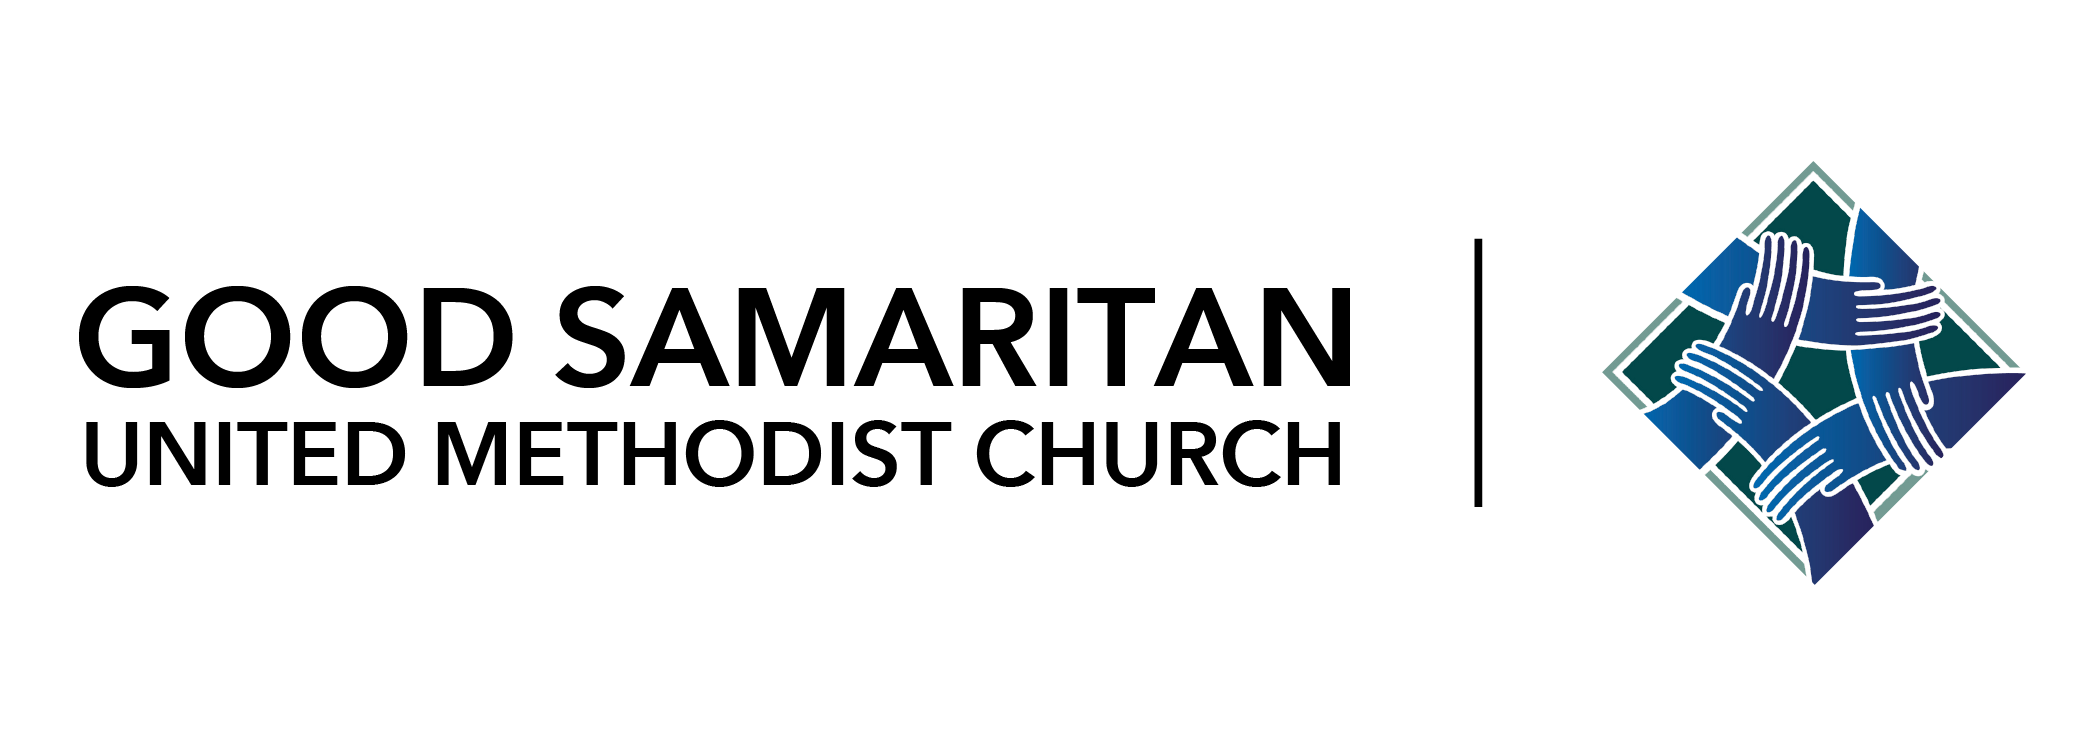 Good Samaritan United Methodist